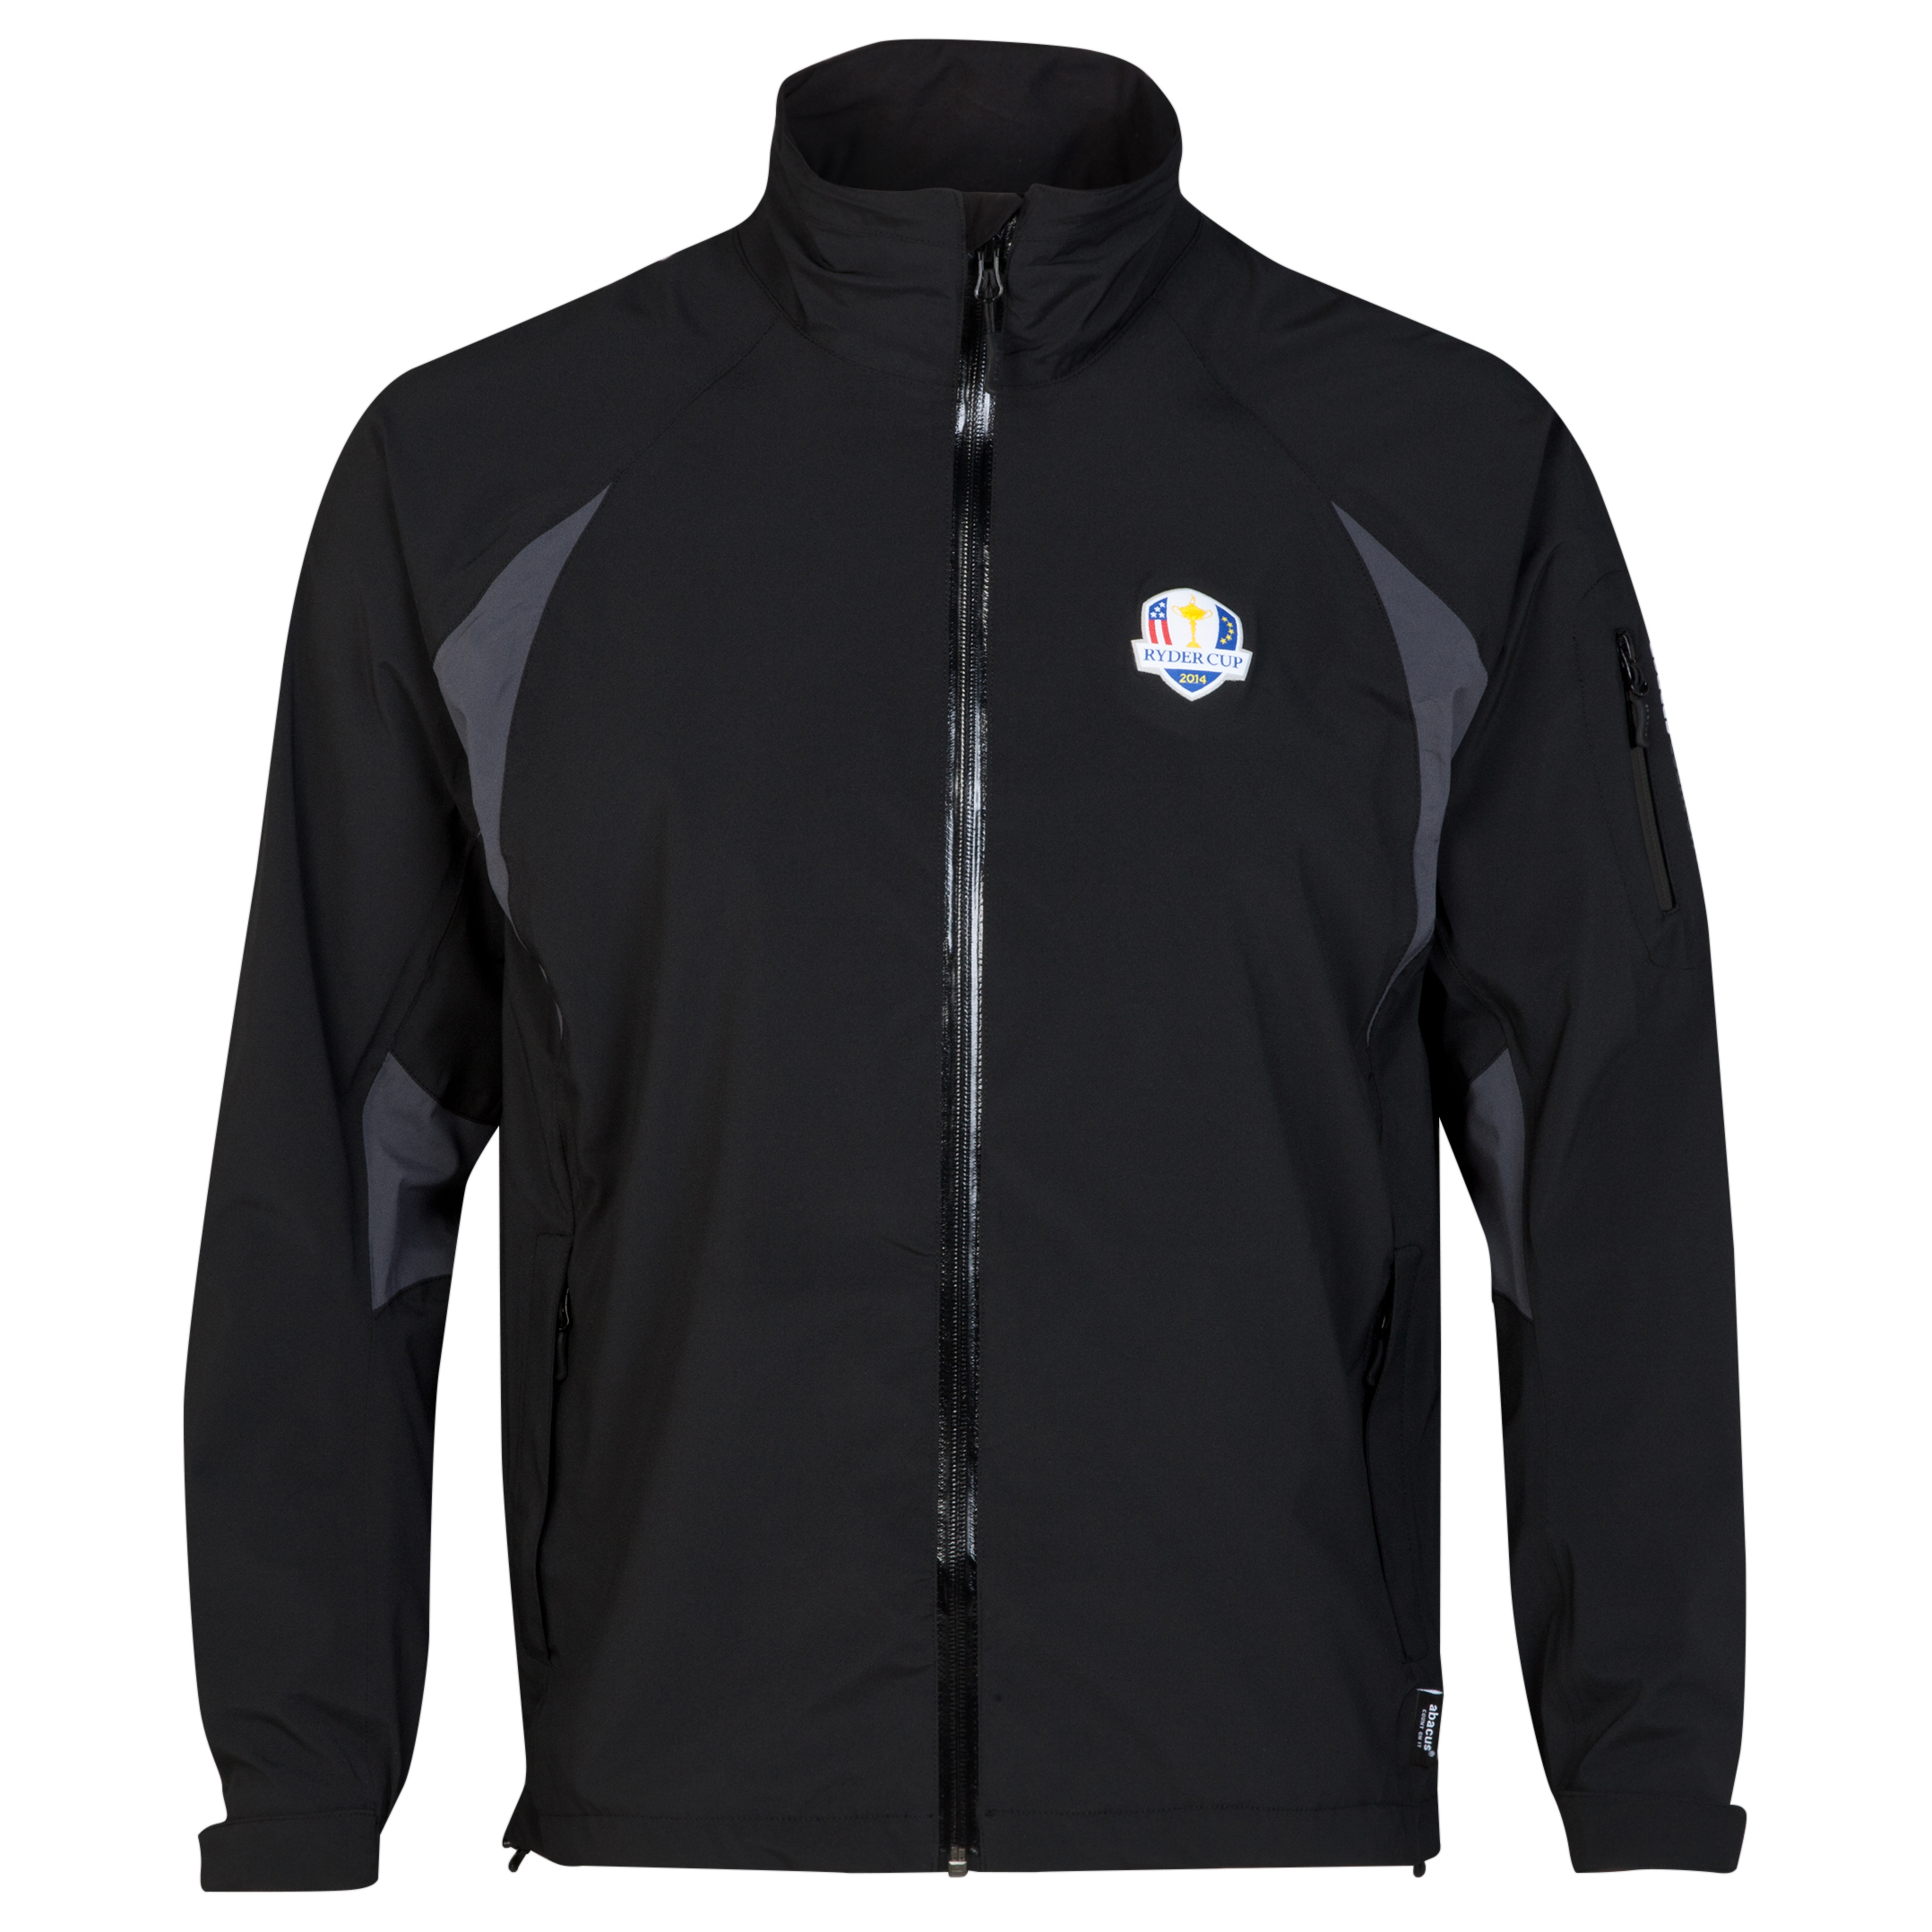 The 2014 Ryder Cup abacus Mens Nipton Rain Jacket - Black